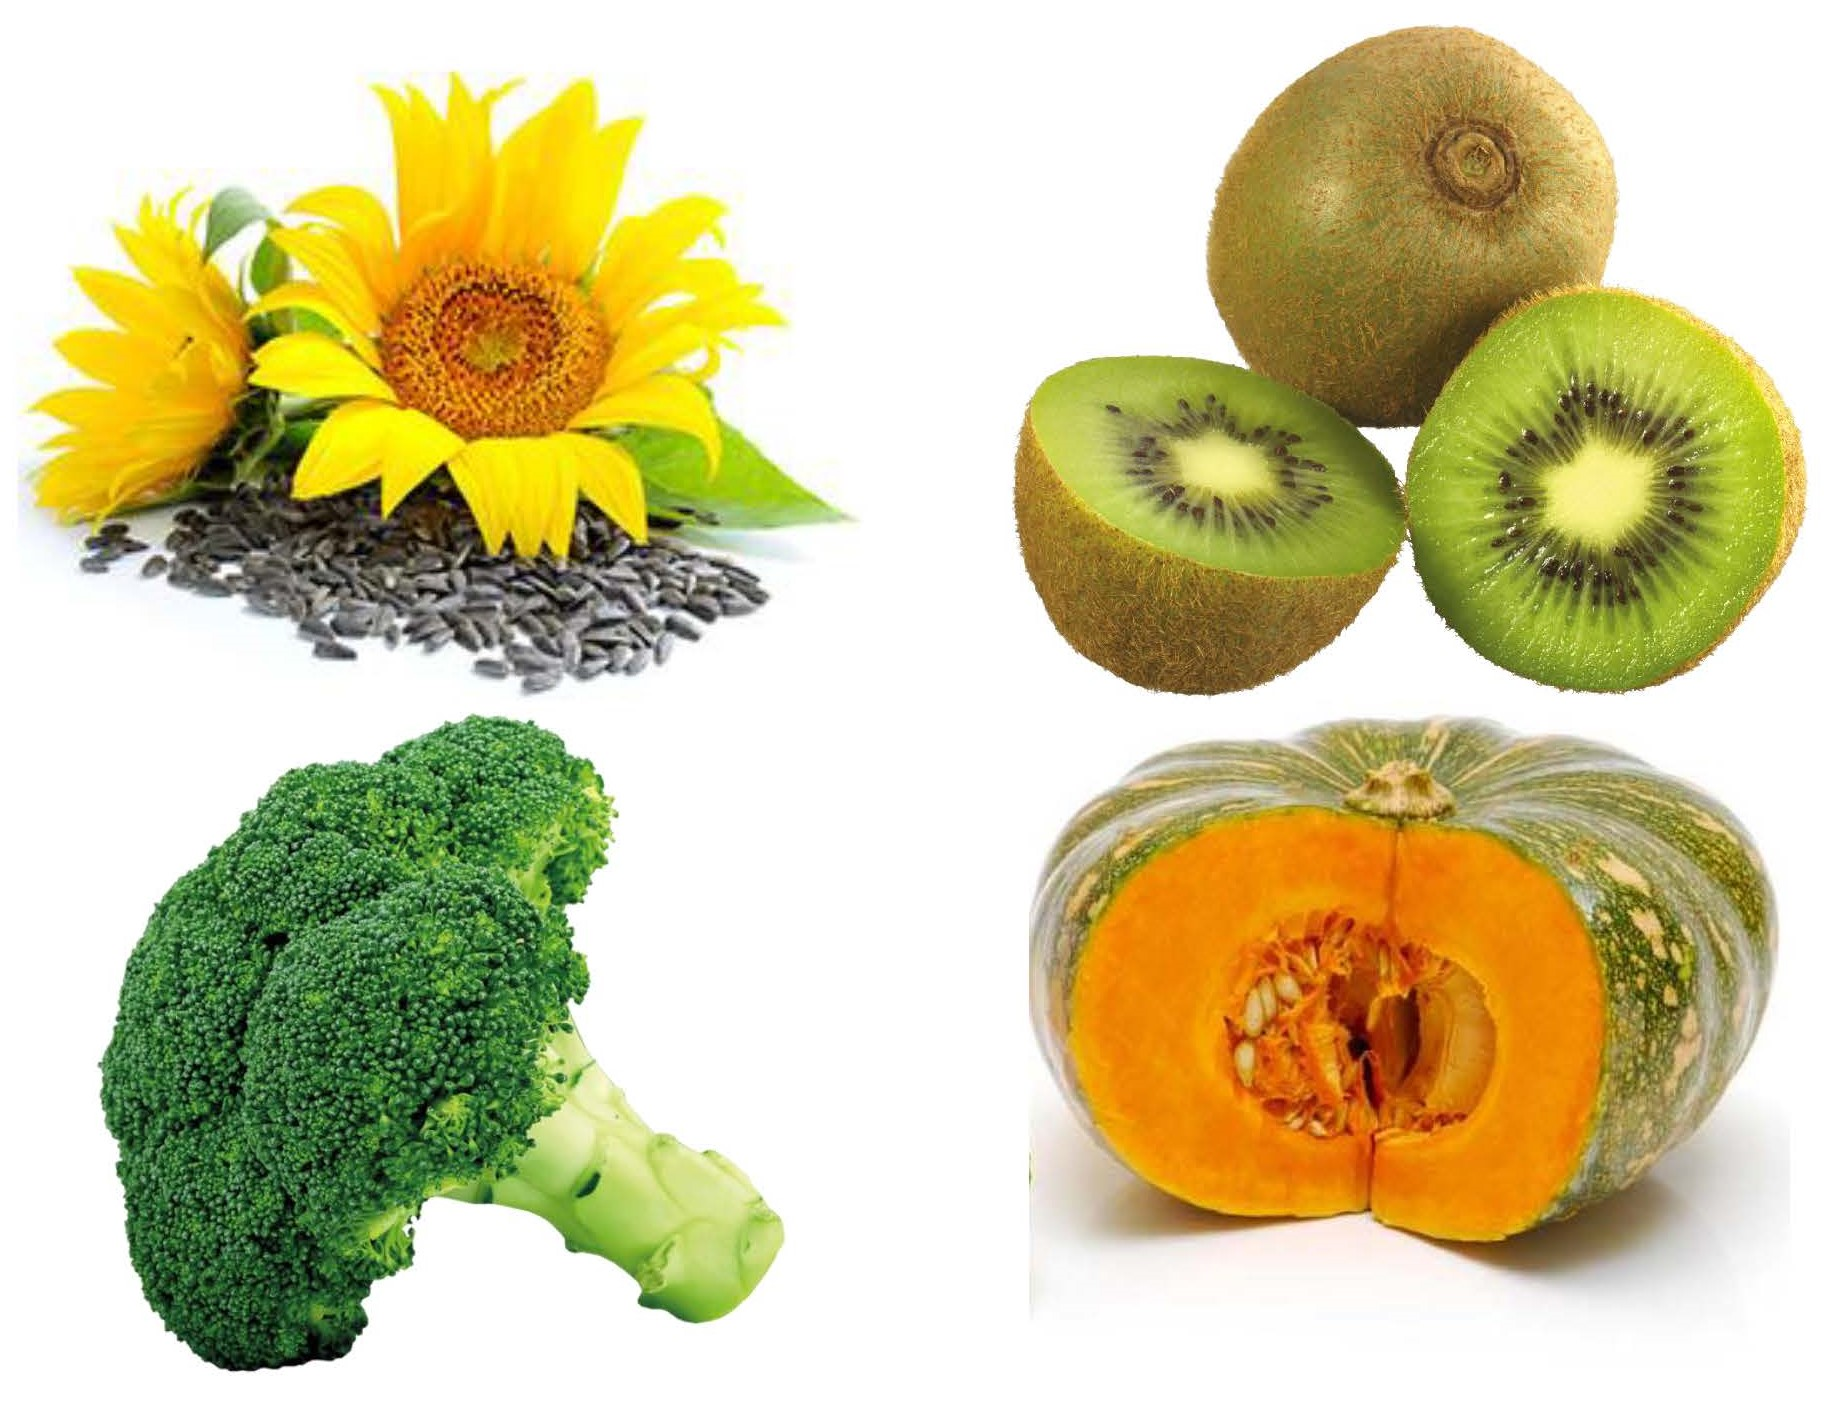 Fruits And Vegetables Containing Vitamin E Food for life natural sources of vitamin e foods high in vitamin e include dark leafy greens nuts seeds avocados plant oils broccoli squash and fruits the current daily value dv for vitamin workwithnaturefo